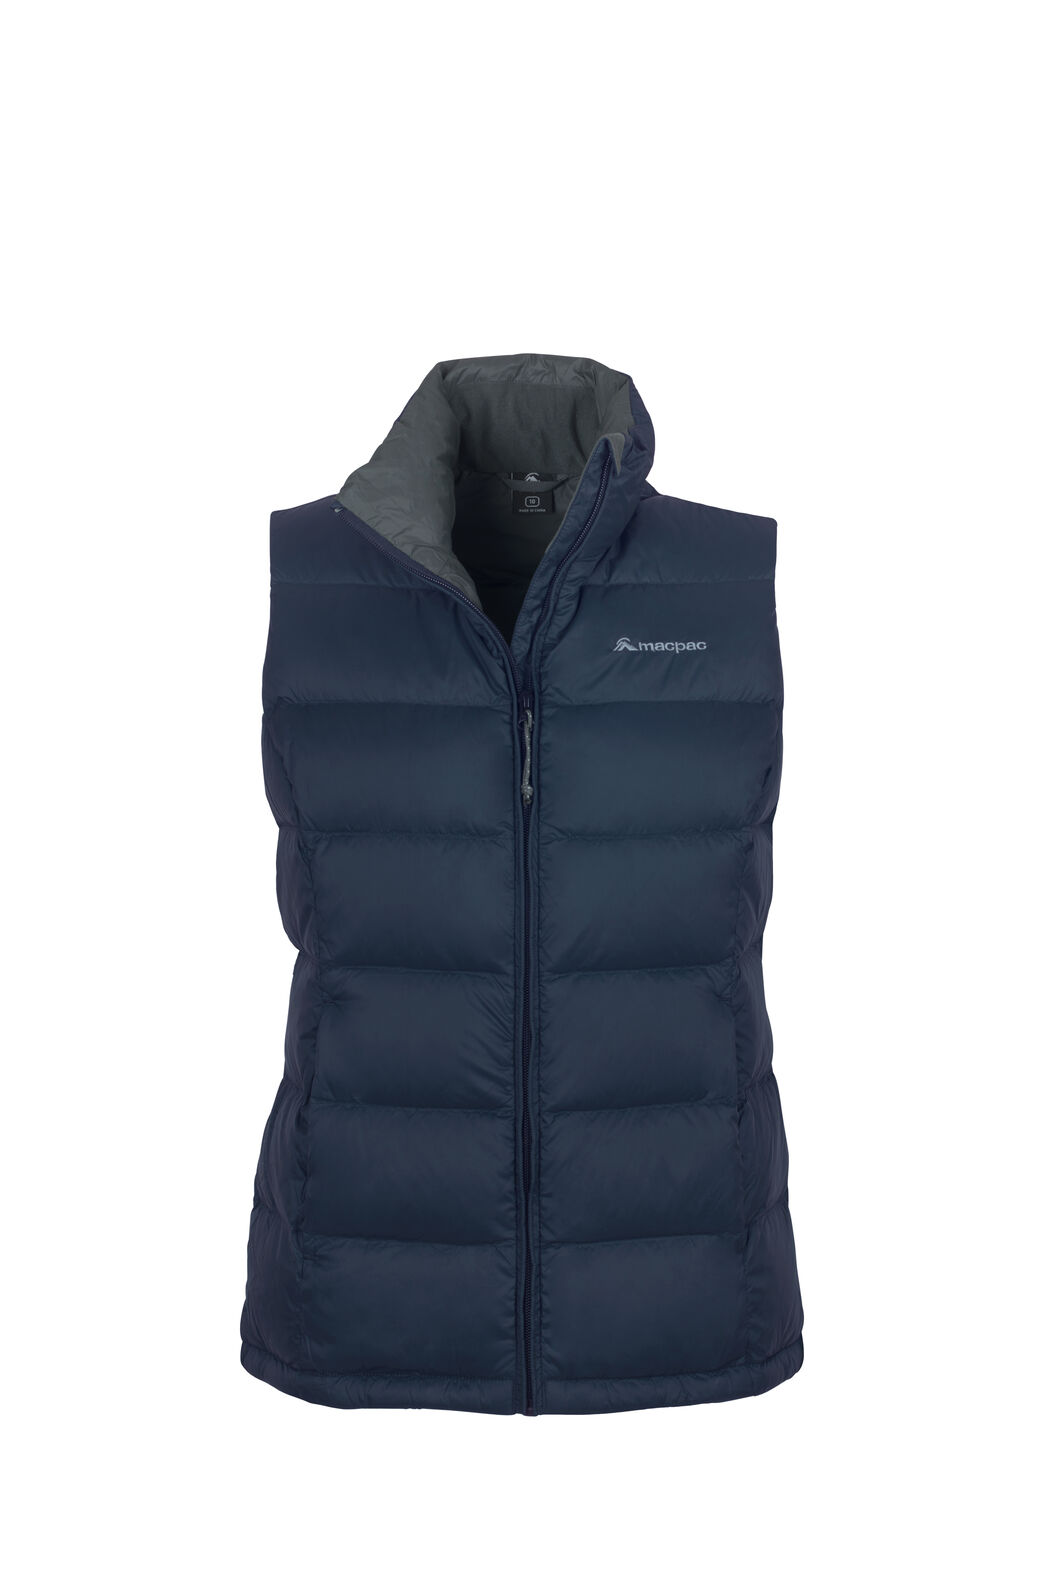 Macpac Halo Down Vest - Women's, Black Iris, hi-res